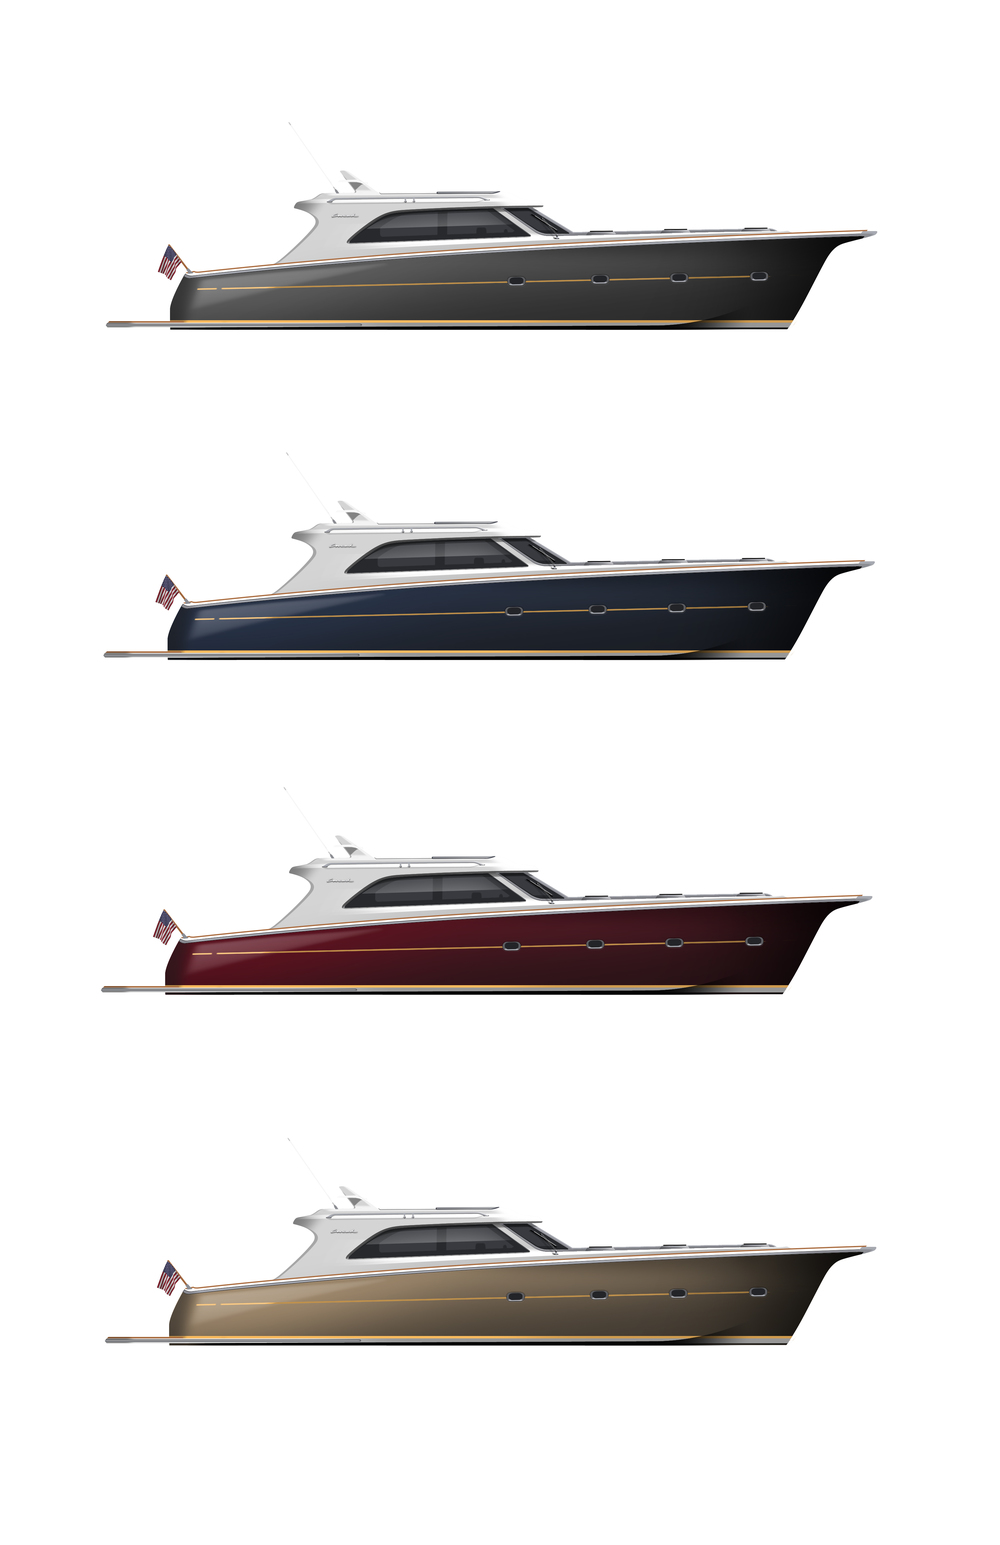 A few color combinations for the hull